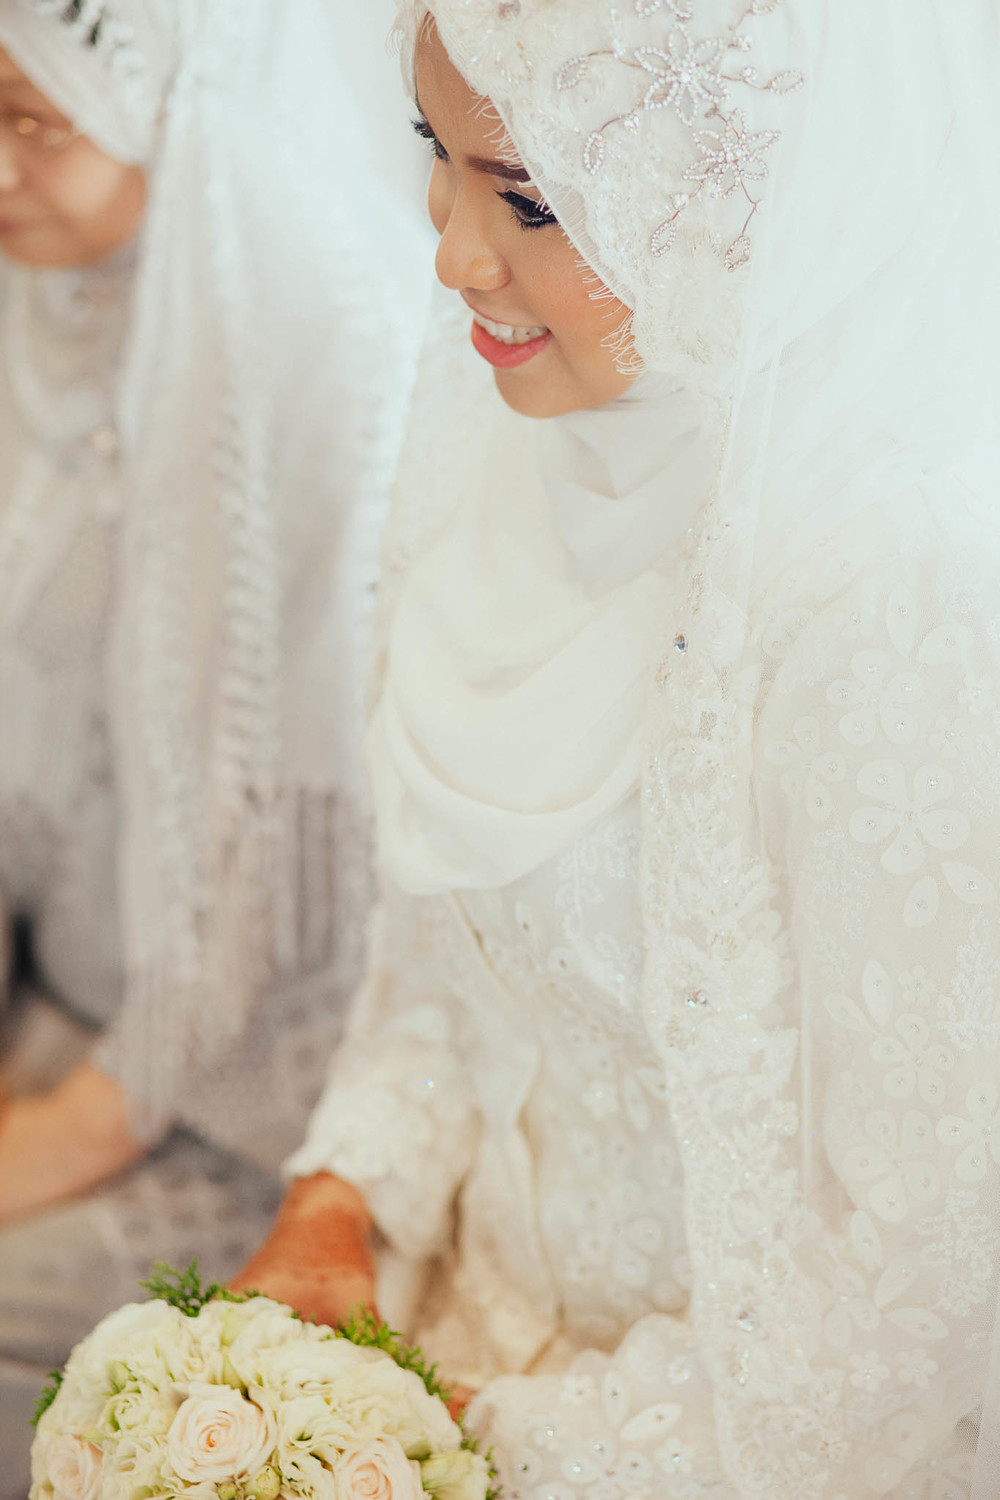 singapore-wedding-photographer-travel-wemadethese-atara-hafizah-14.jpg